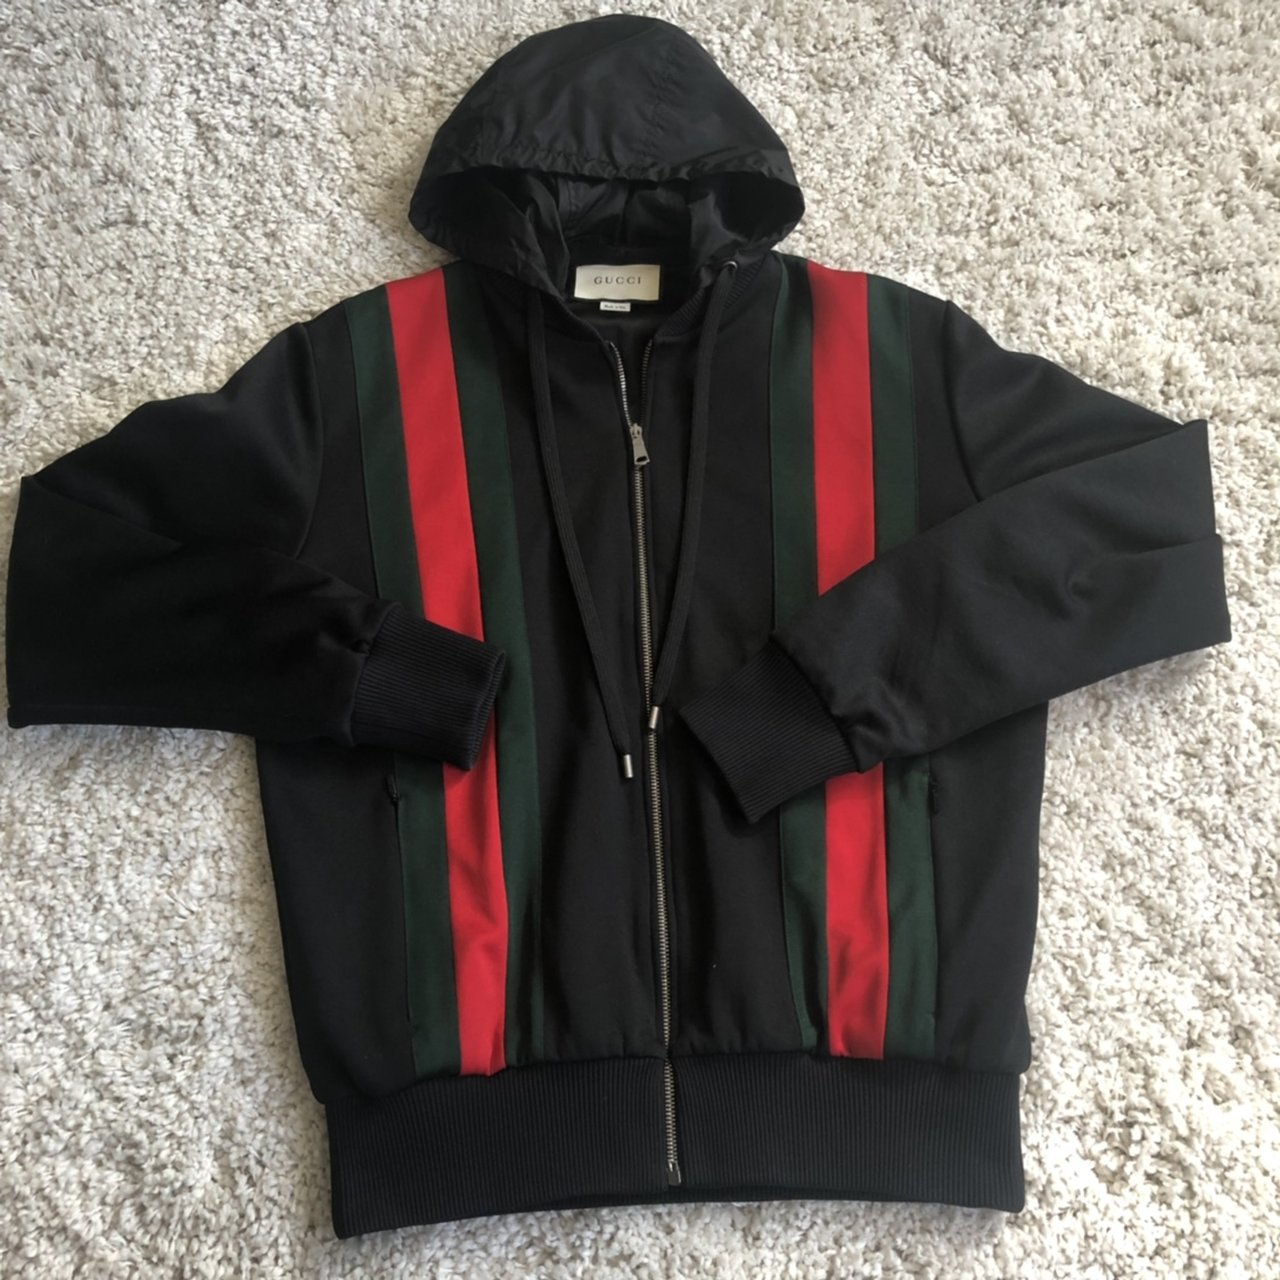 bffb6c65ddc Gucci striped track jacket Condition 9